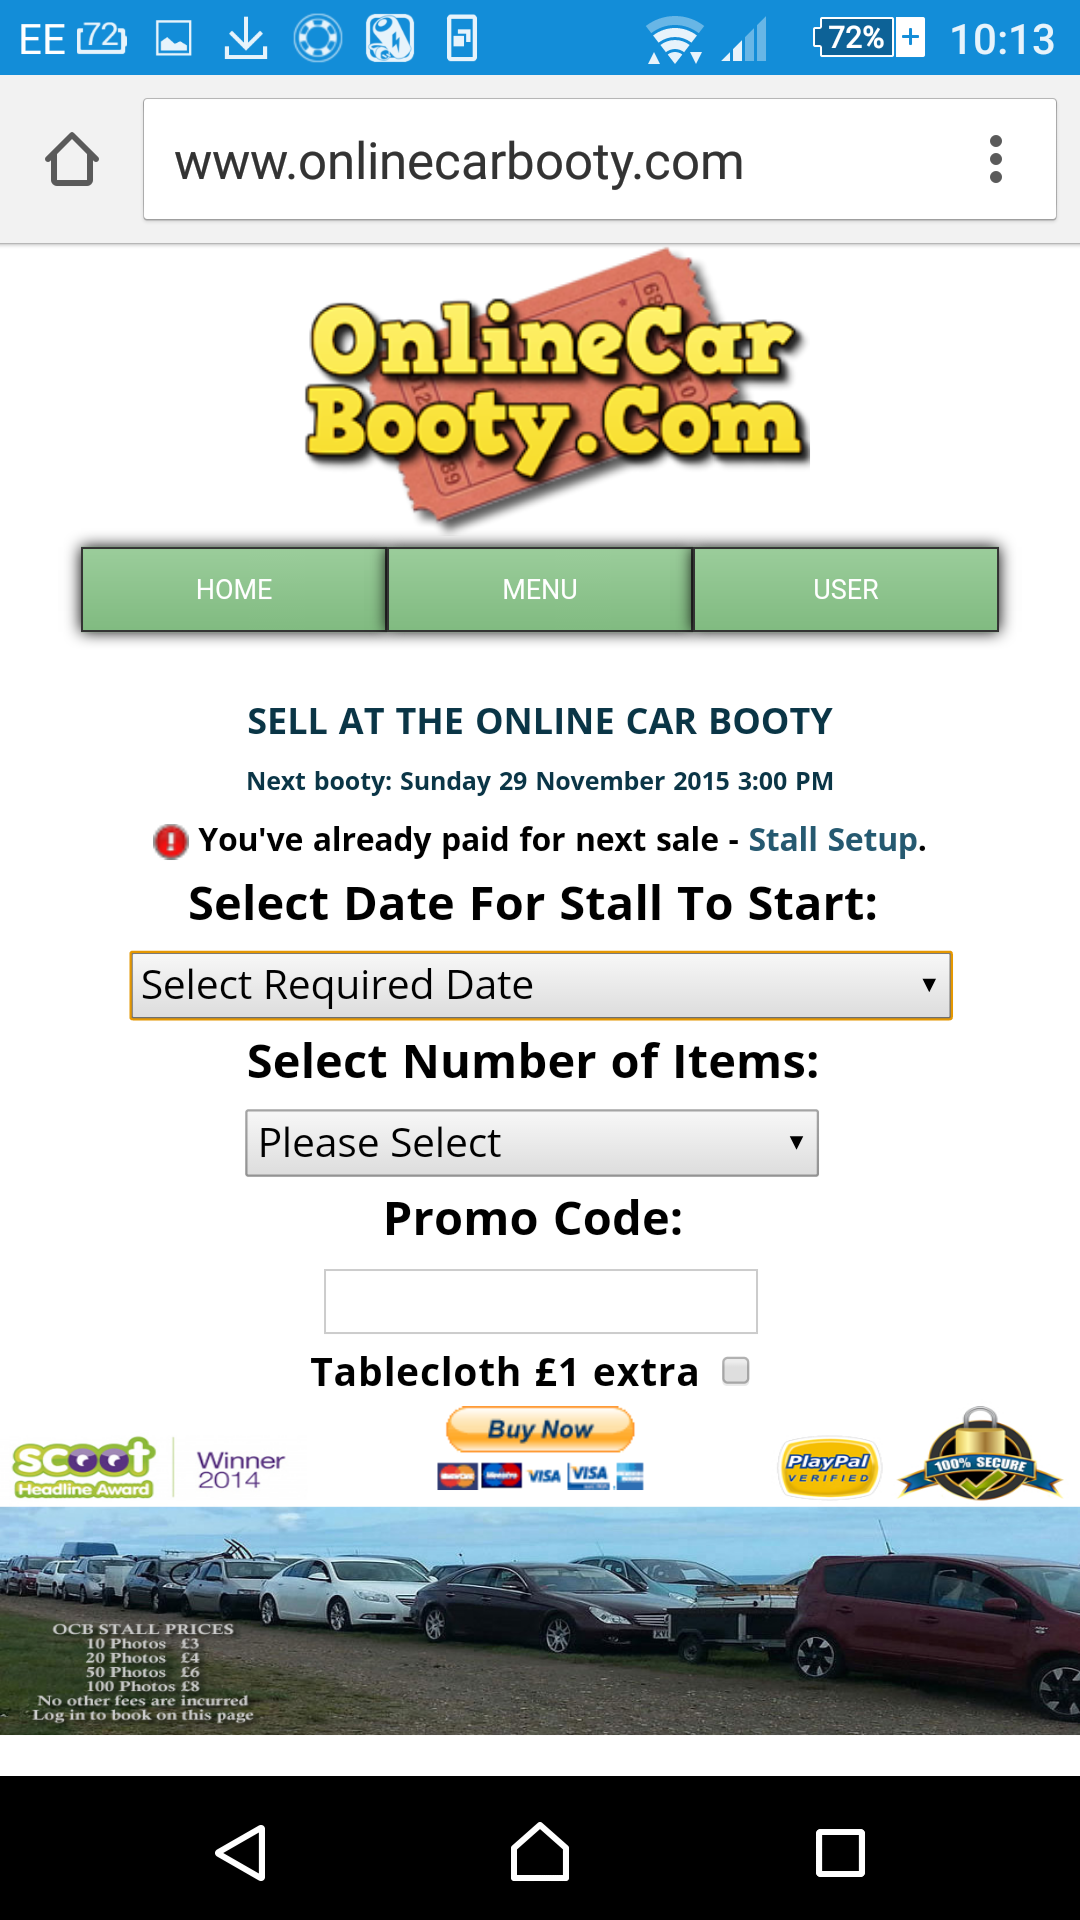 Amazon.com: Online Car Booty - Virtual Car Boot Sale: Appstore for ...